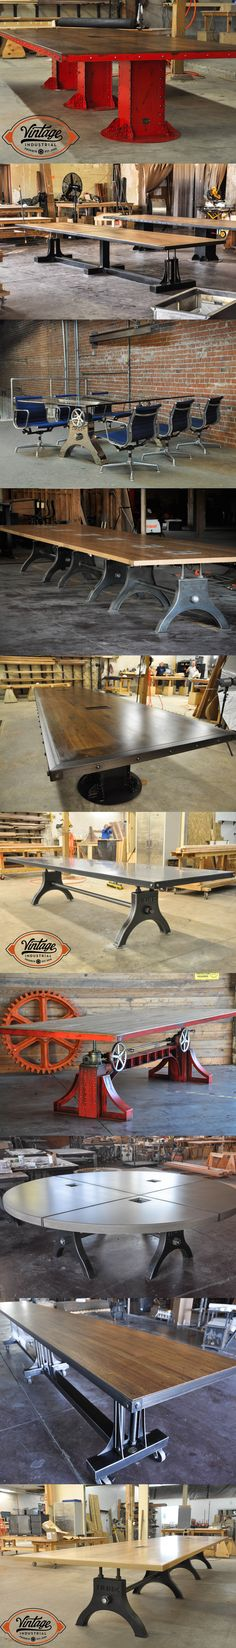 Vintage Industrial offers several conference table options that are all customizable with size, finish, color, dataport, and top material. We build to order in Phoenix! These also make a great community table. - A Interior Design Vintage Industrial Furniture, Industrial Table, Steampunk Furniture, Industrial Office, Cool Furniture, Furniture Design, Style Deco, Conference Table, Vintage Design